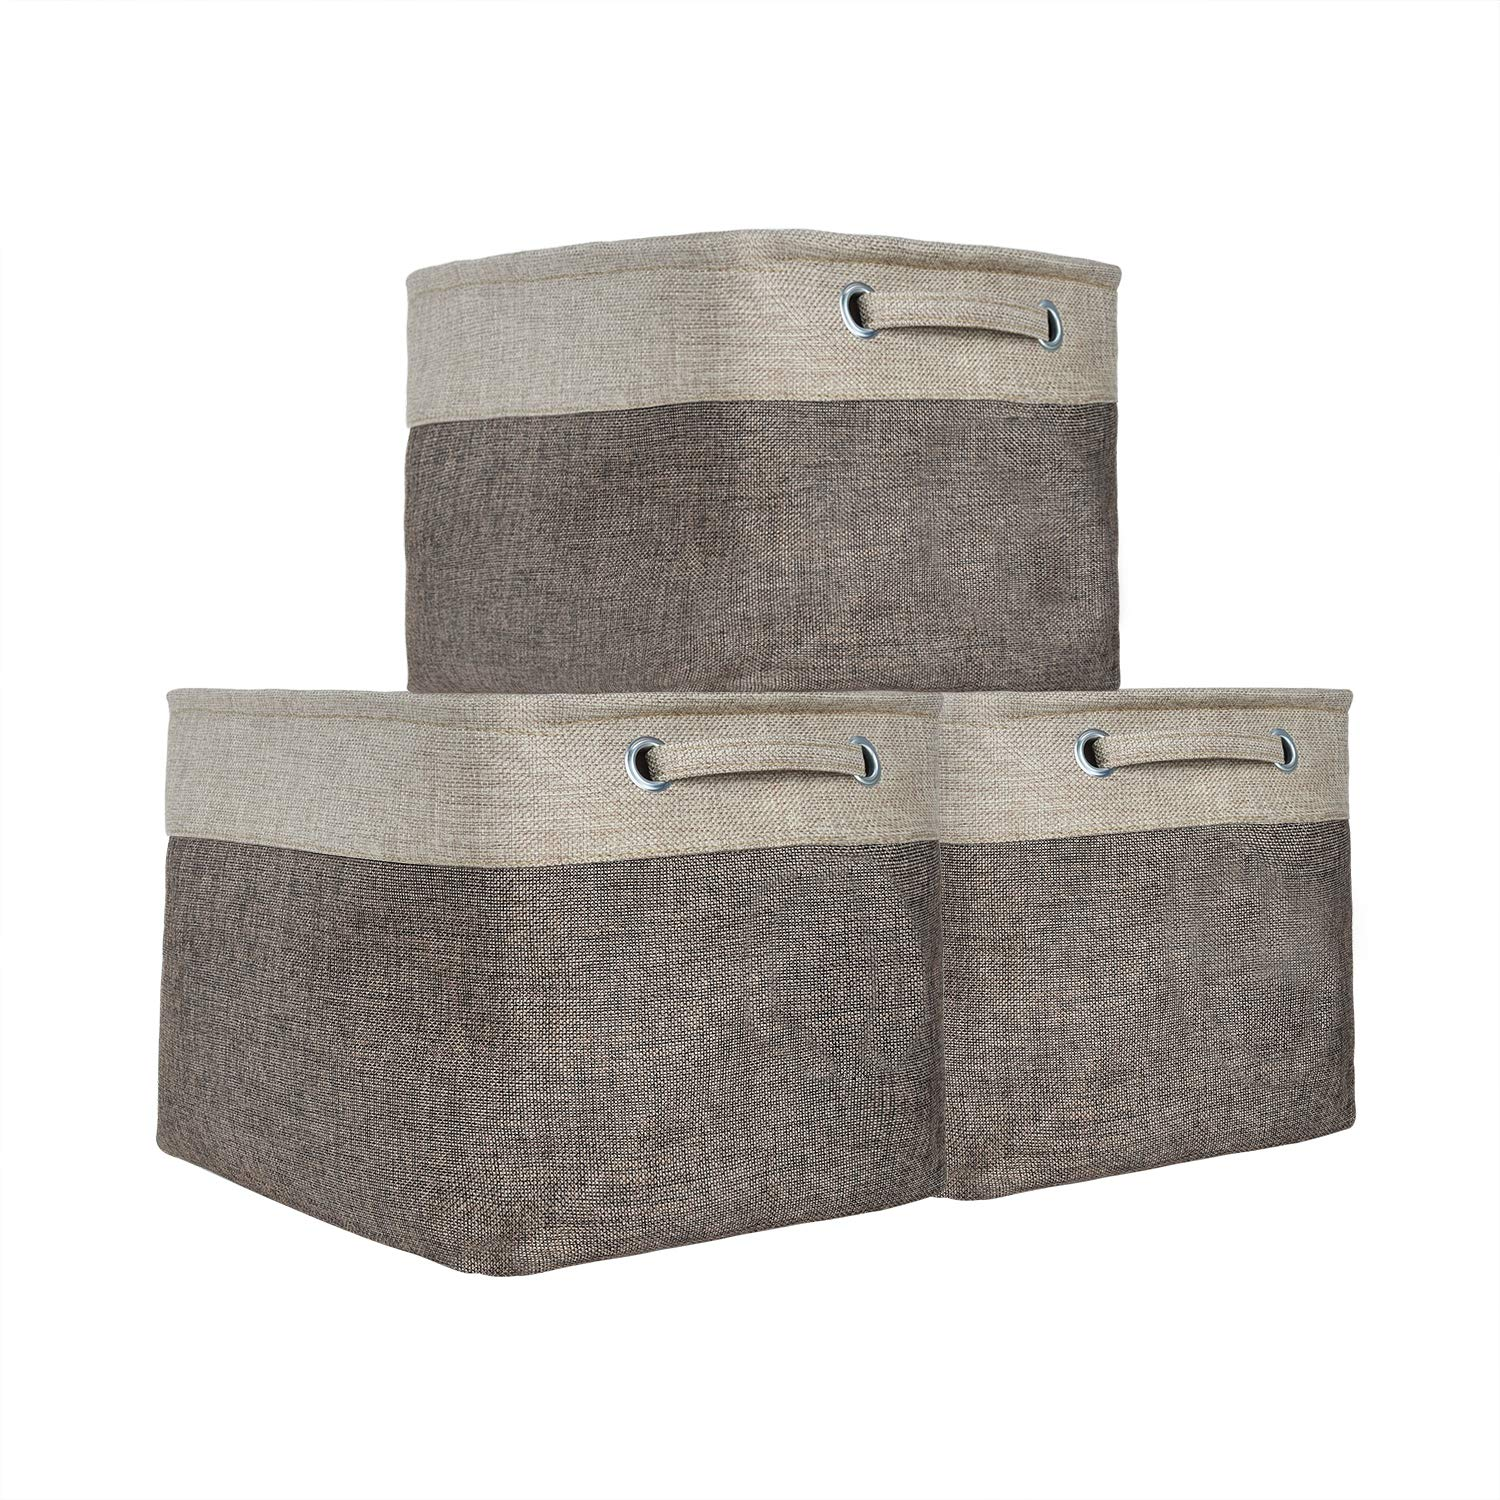 Expo Essential - 3 Pack -15''x11''x9'' Collapsible Storage Baskets Linen Bin Cube Foldable Toy Organizer, Bathroom Kitchen Fabric Storage with Handles